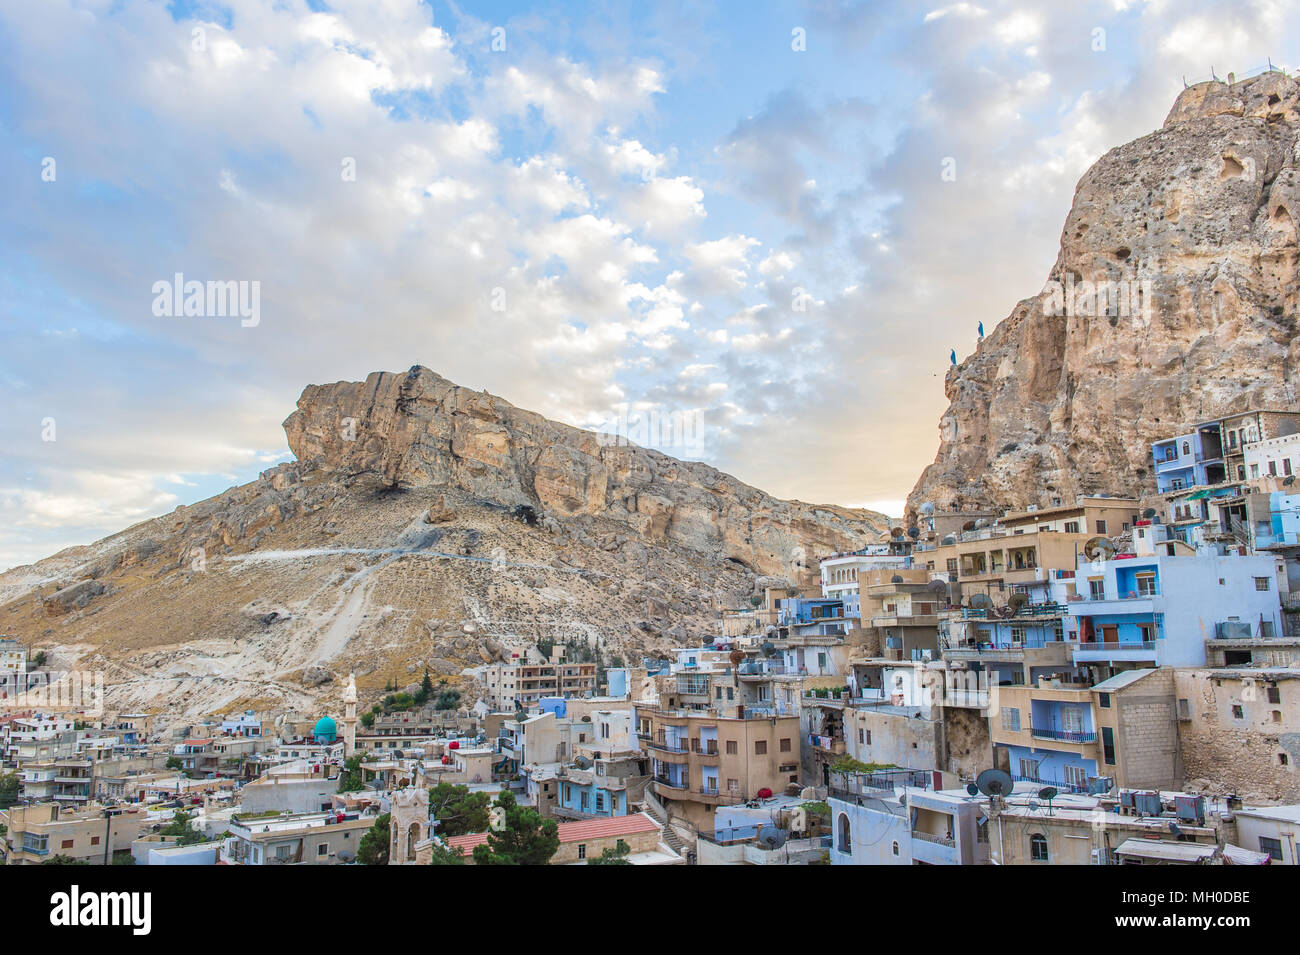 Ma'loula or Maaloula, a village in the Rif Dimashq Governorate in Syria. It's built into the rugged mountainside, at an altitude of more than 1500 met Stock Photo